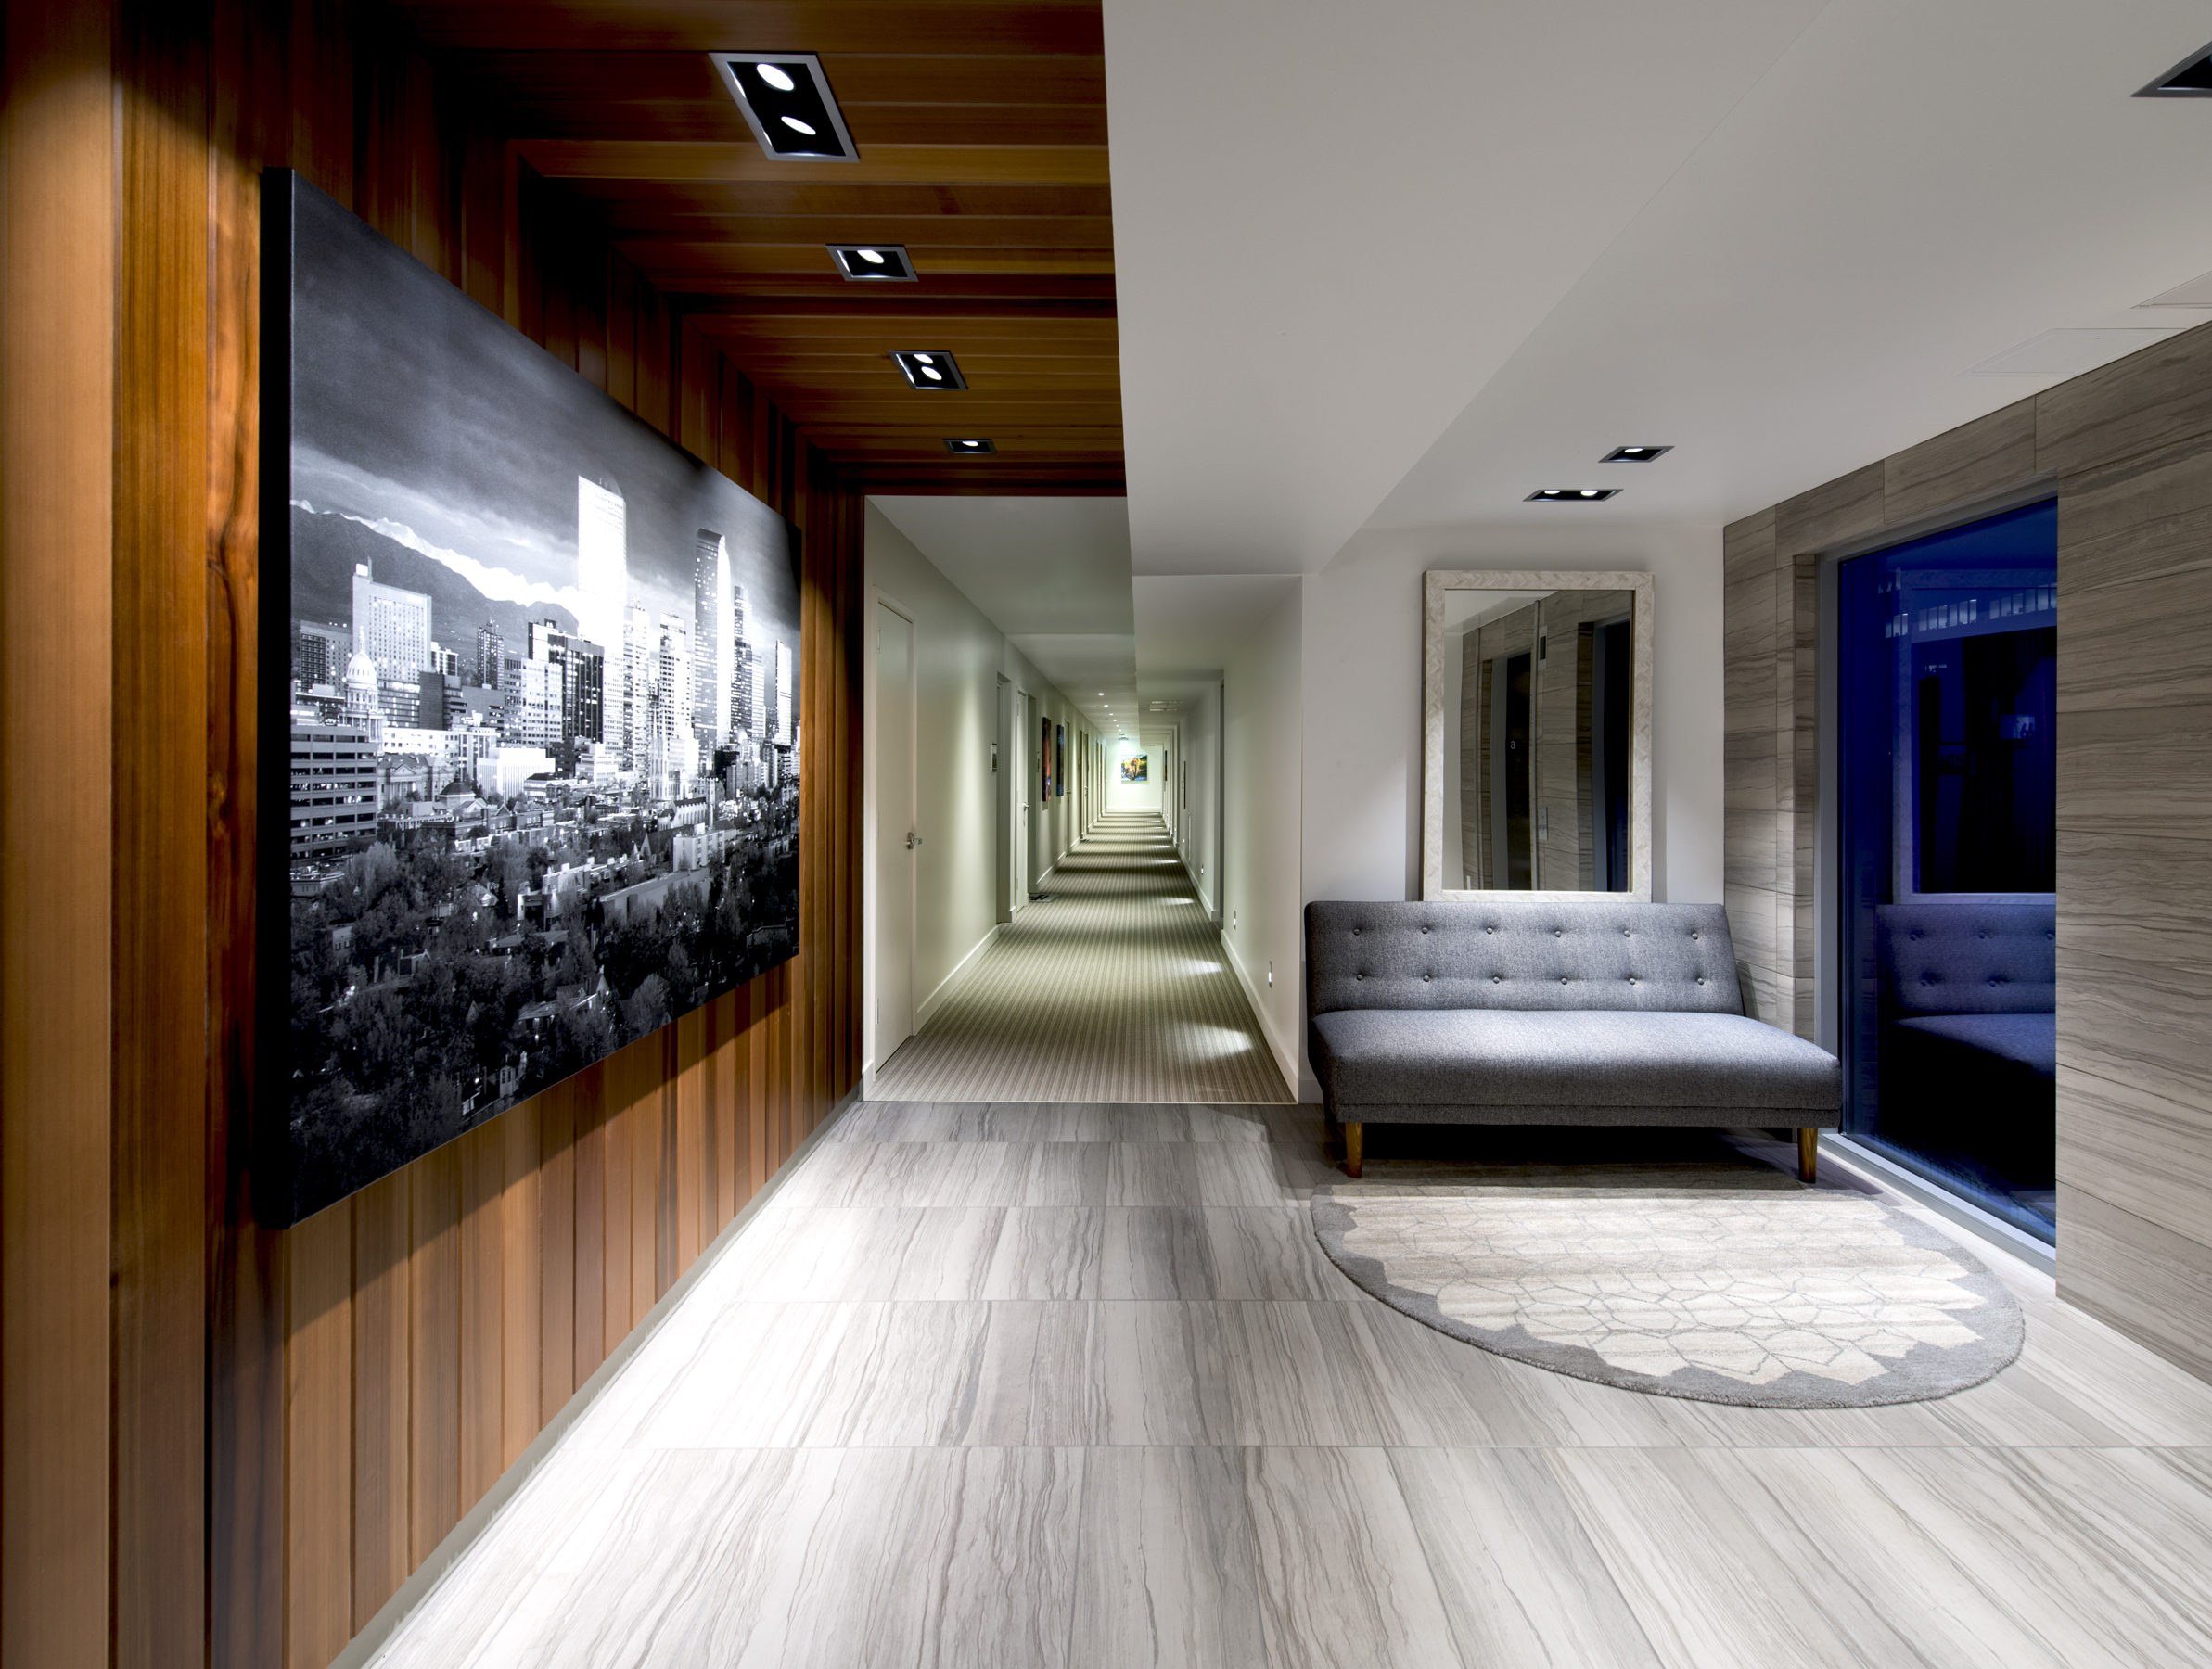 10 Residences at Fillmore Plaza Cherry Creek open studio architecture OSA - interior lobby